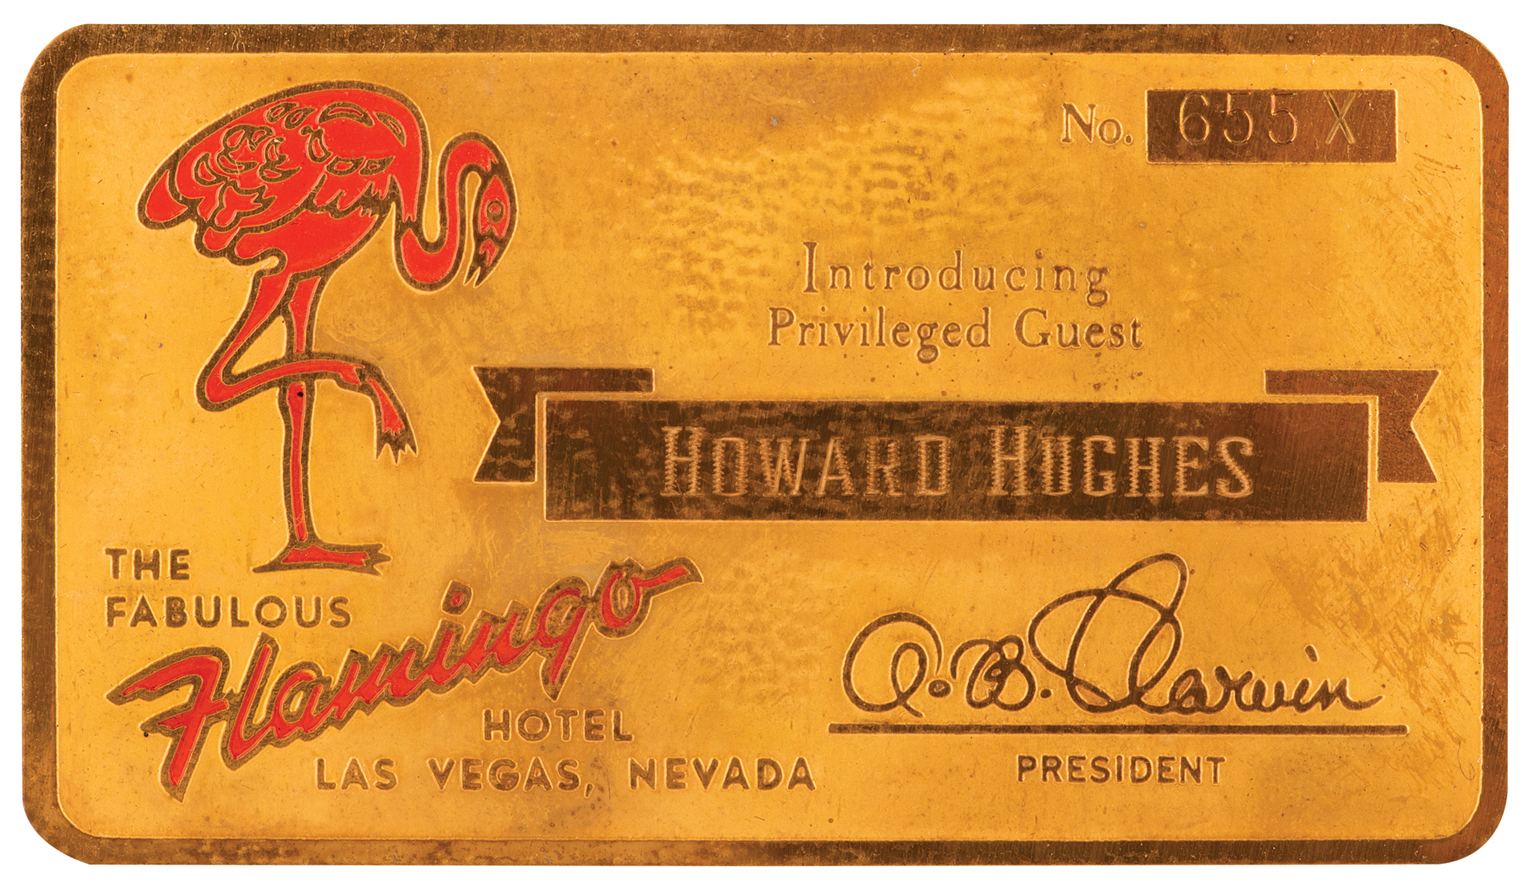 Profiles In History Announces The Howard Hughes Auction